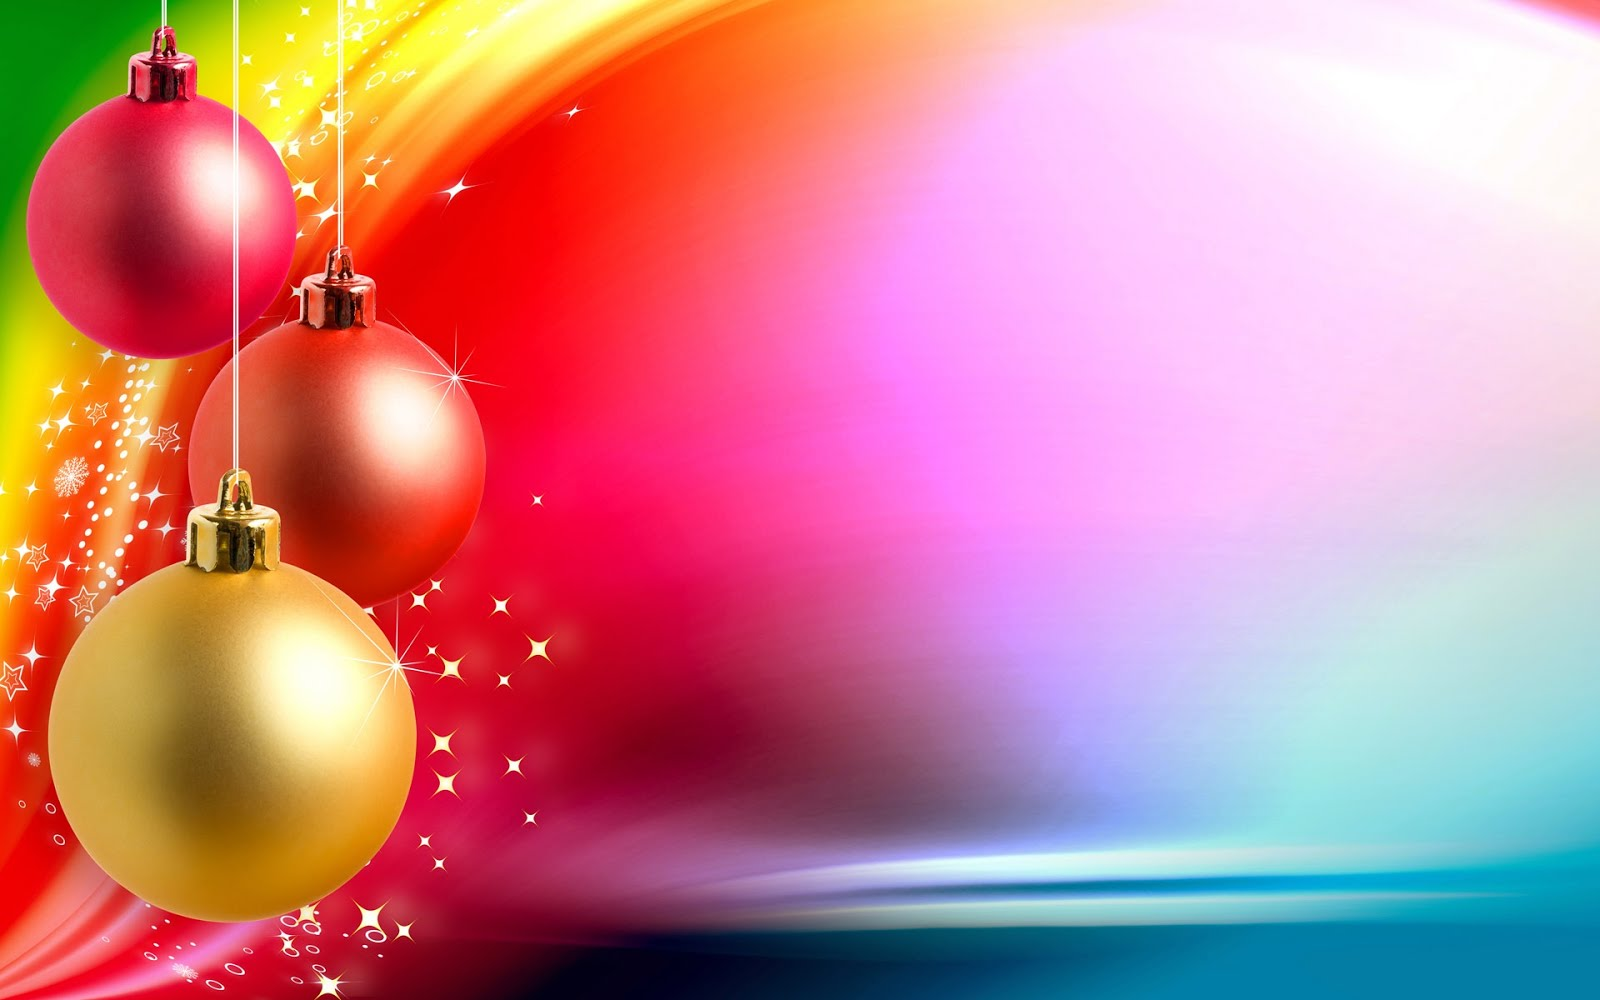 Christmas decorations wallpaper unique pictures for Background decoration images